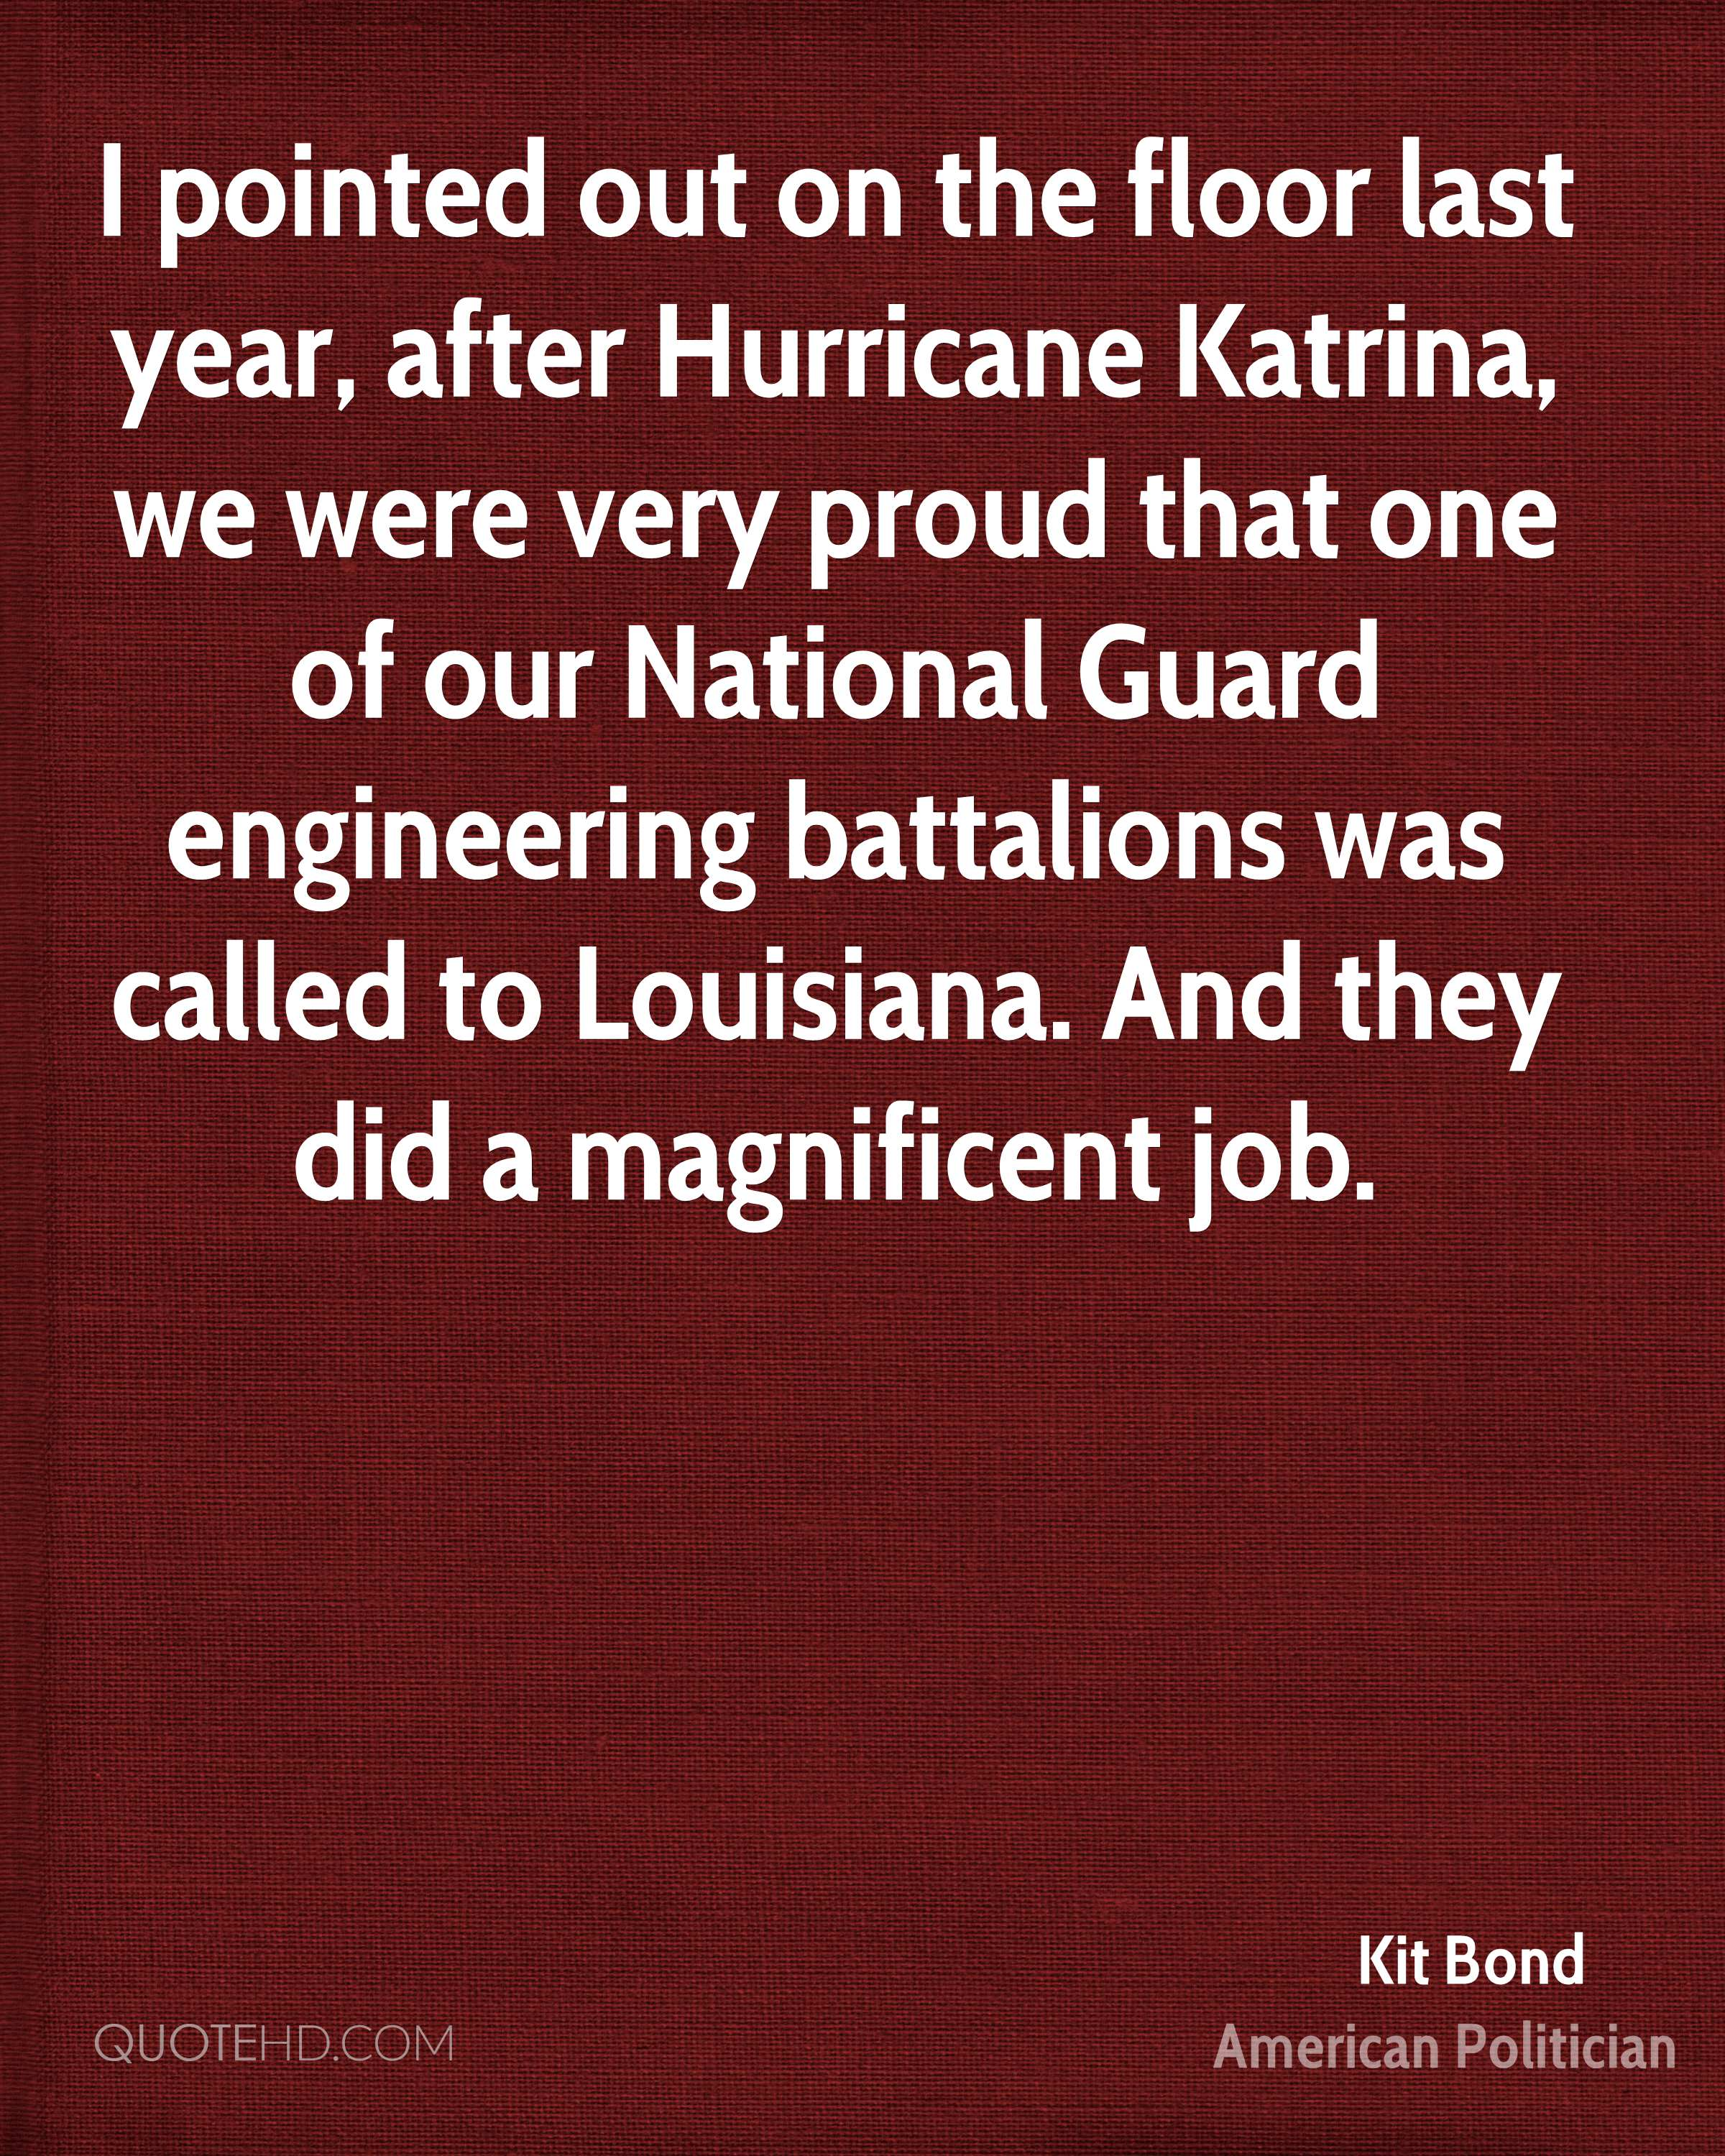 I pointed out on the floor last year, after Hurricane Katrina, we were very proud that one of our National Guard engineering battalions was called to Louisiana. And they did a magnificent job.